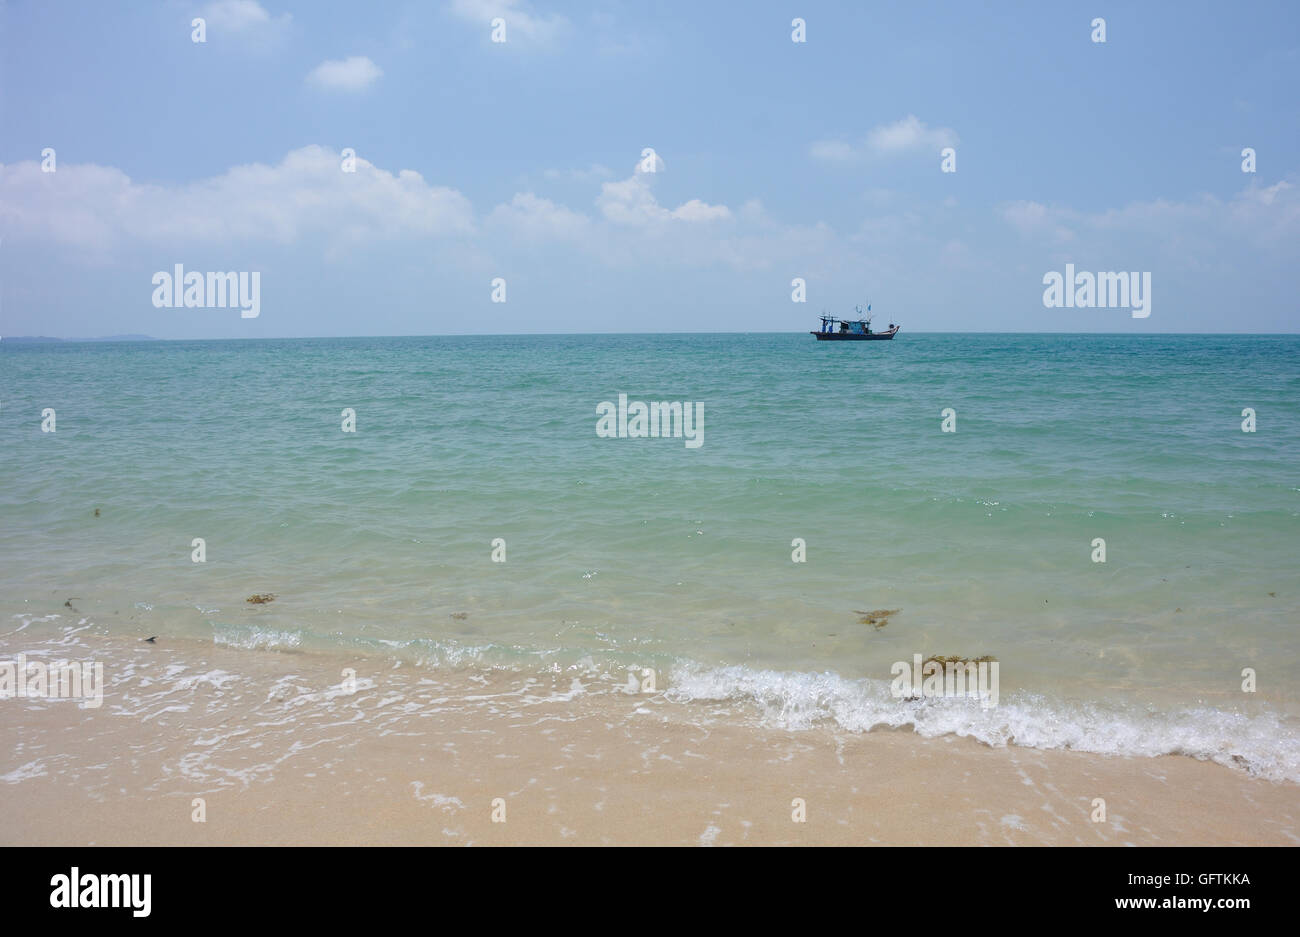 Looking Out to the South China Sea from Johor in Malaysia - Stock Image